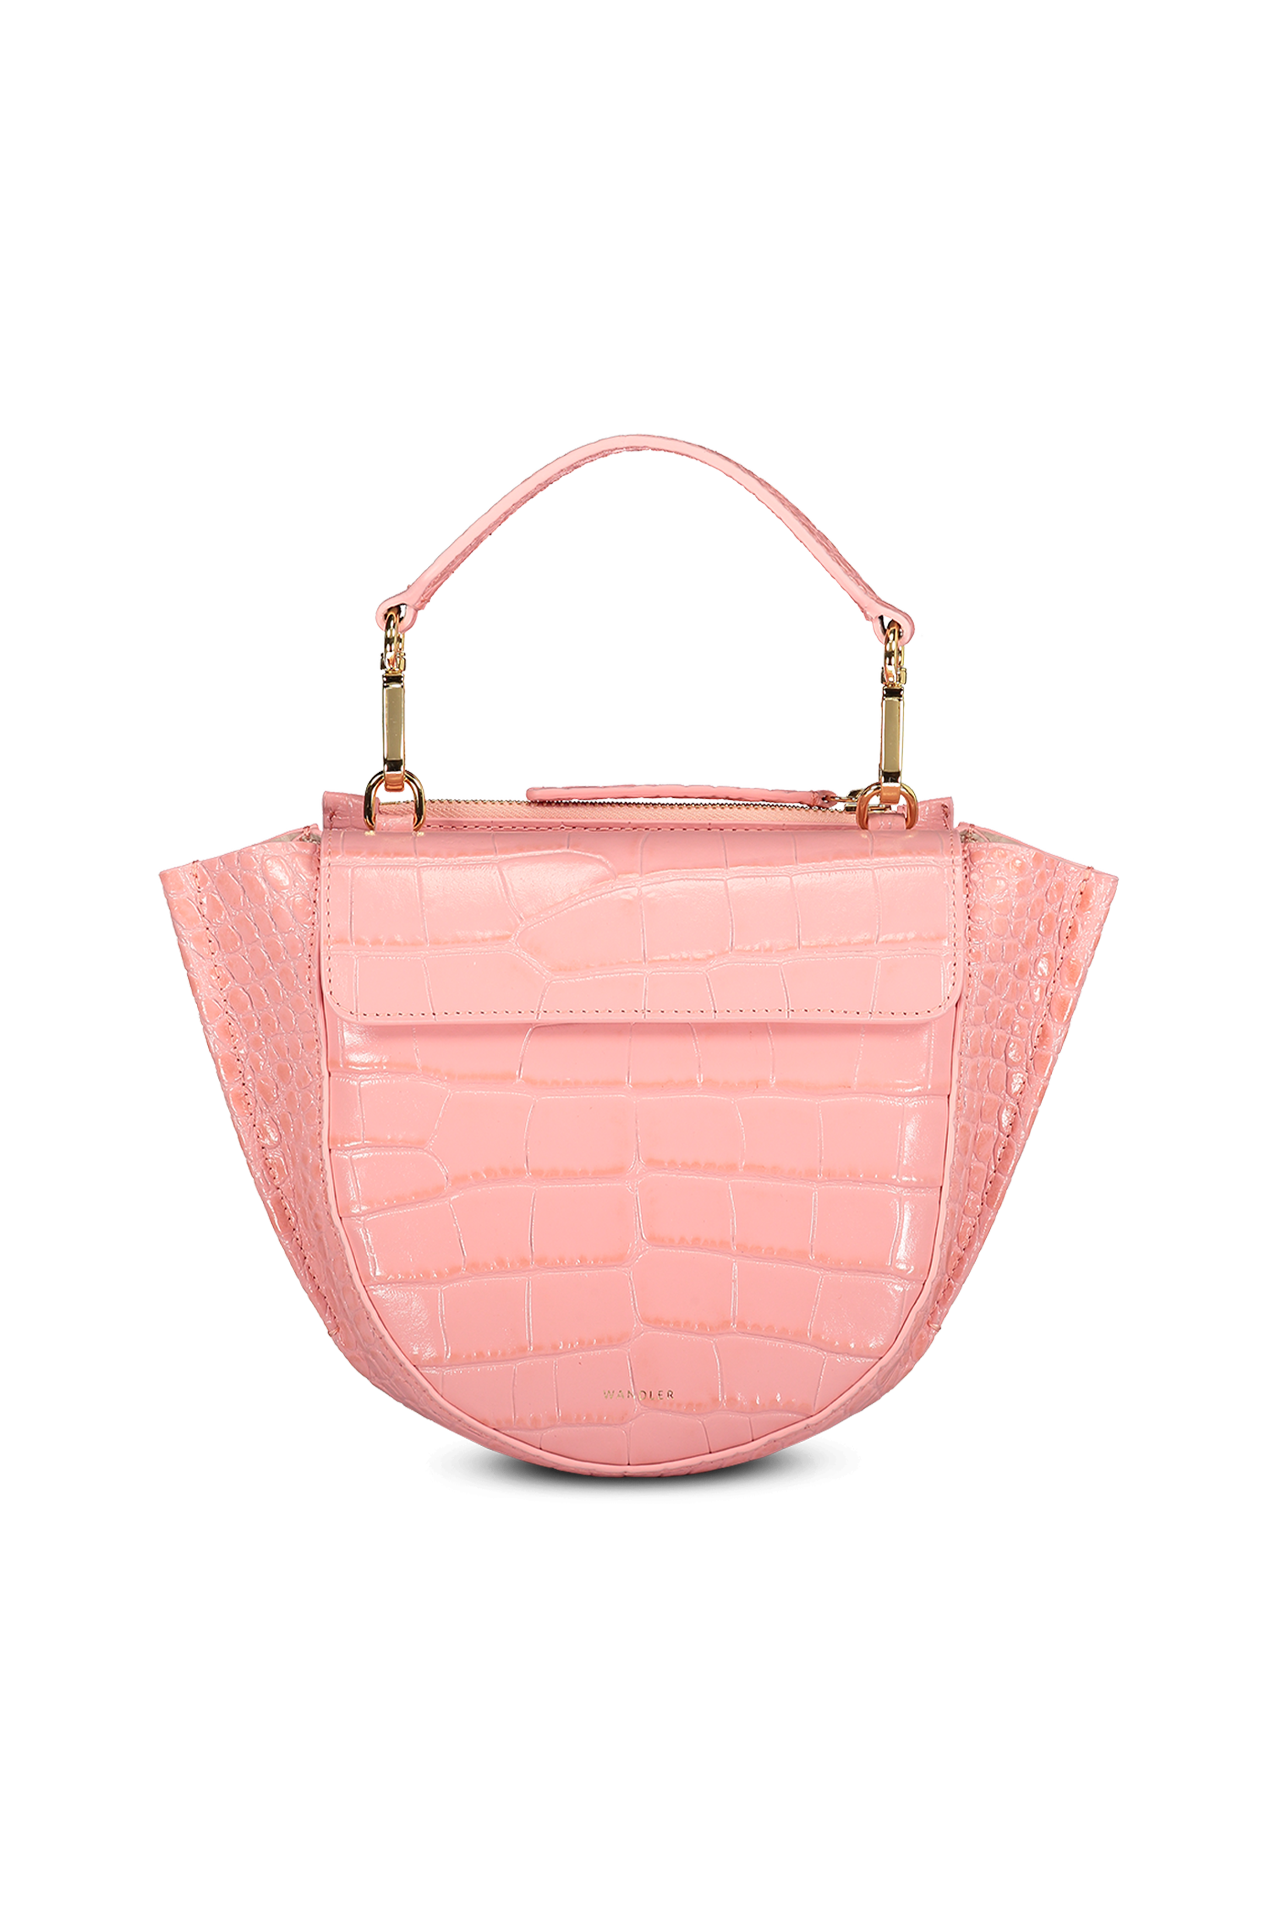 Hortensia Bag Mini Croco Calf Leather Blossom